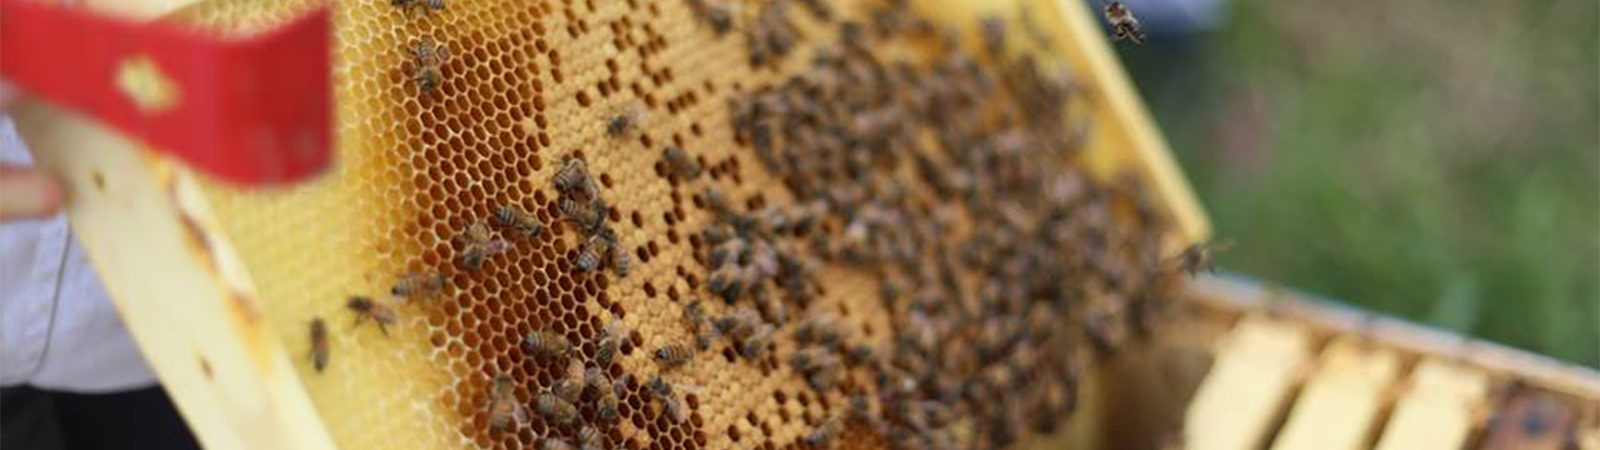 Lily Springs Farm Bees